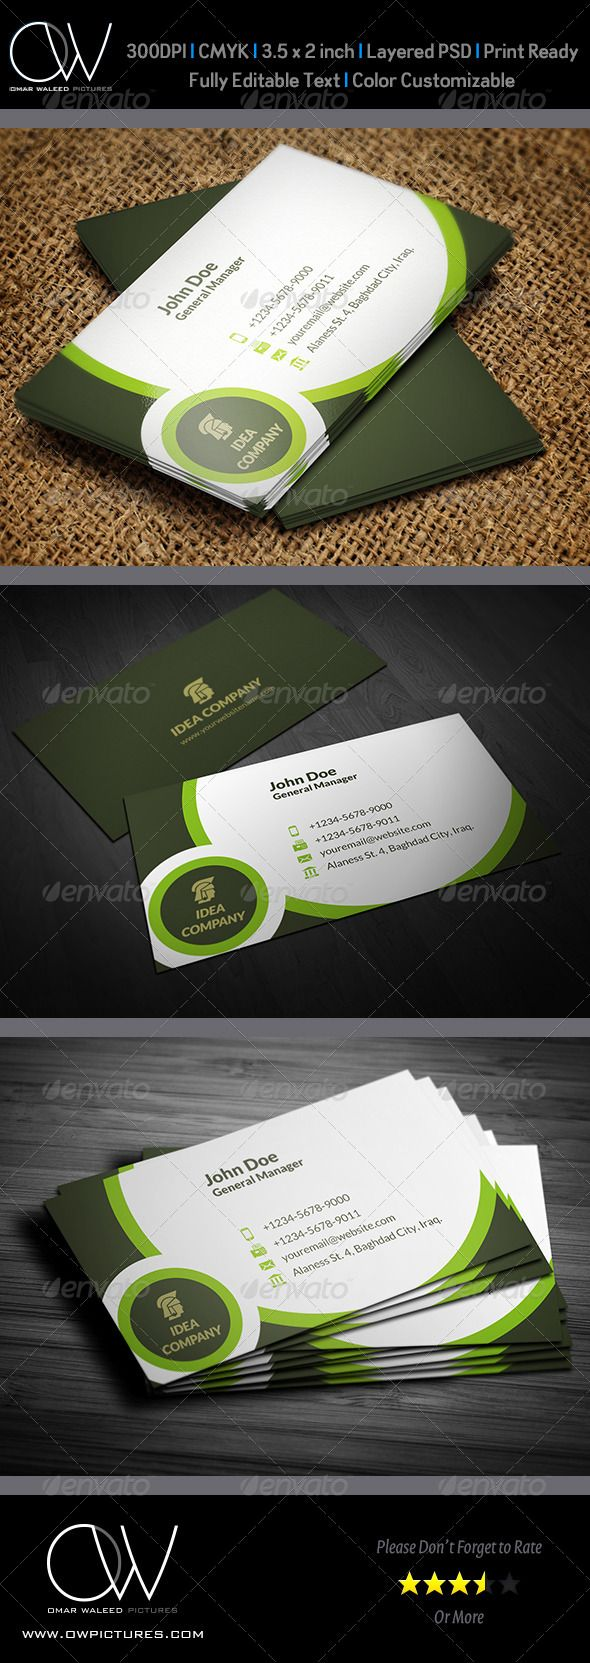 79 Best Business Cards Images On Pinterest Plastic Card Business